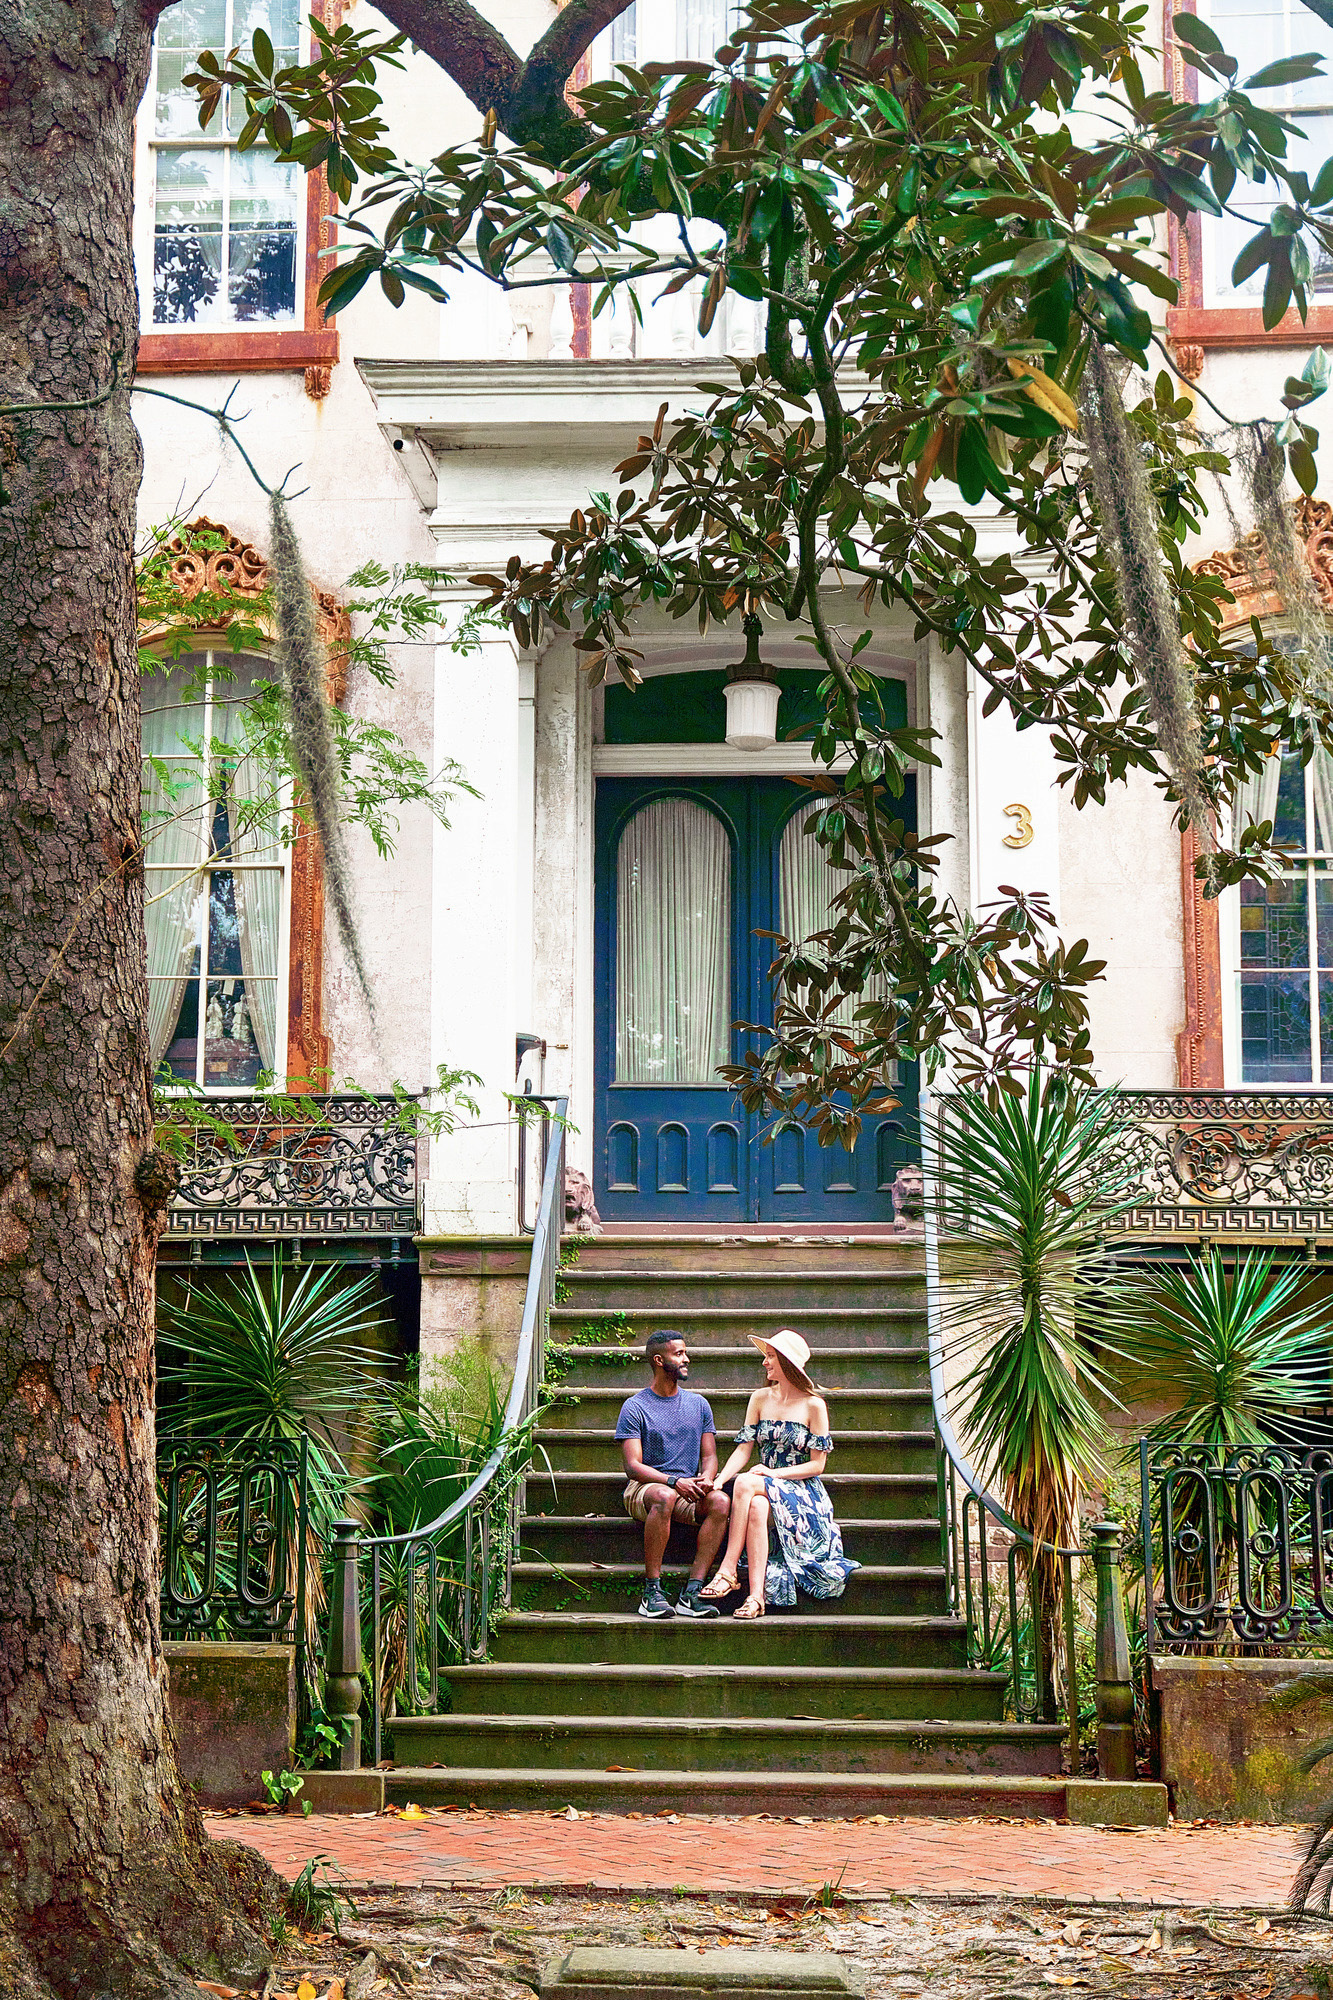 A couple sitting on the stone steps in front of the Alex Raskin Antique store in Savannah Georgia. The steps are surrounded by greenery and lead to double doors with large windows that are painted blue. The building is old and painted white with rust colored trim. The woman in the couple is wearing a blue floral sundress with a sunhat. The man in the couple is wearing a blue shirt and khaki shorts. They are facing each other on the steps and holding hands. A haunted and cool building you should see during your 3 days in Savannah